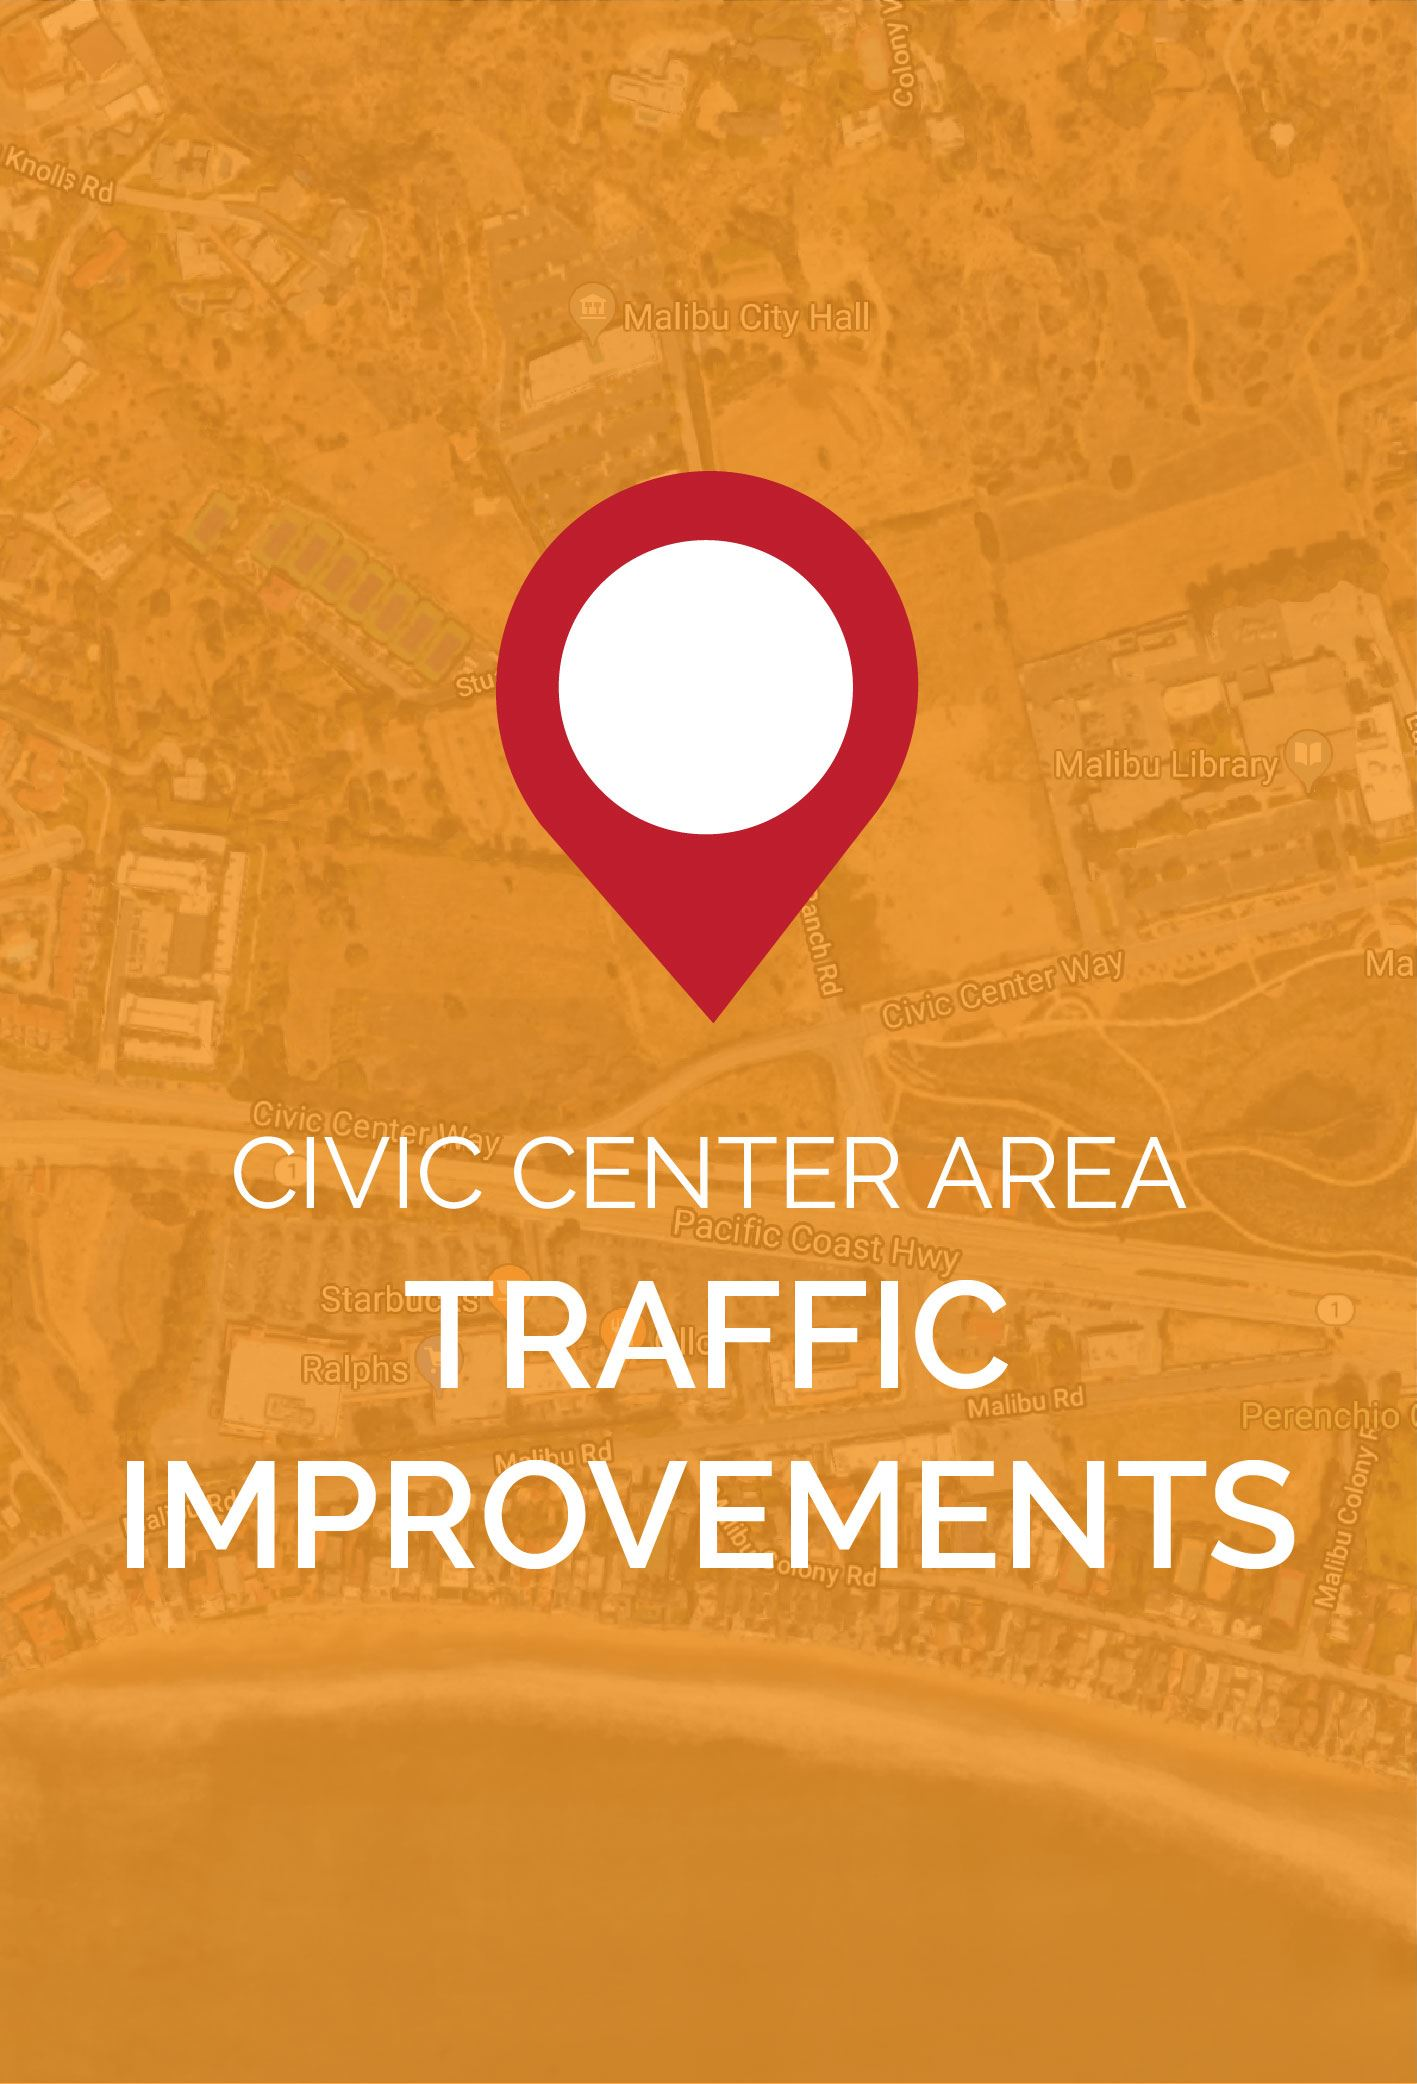 Civic Center Improvements